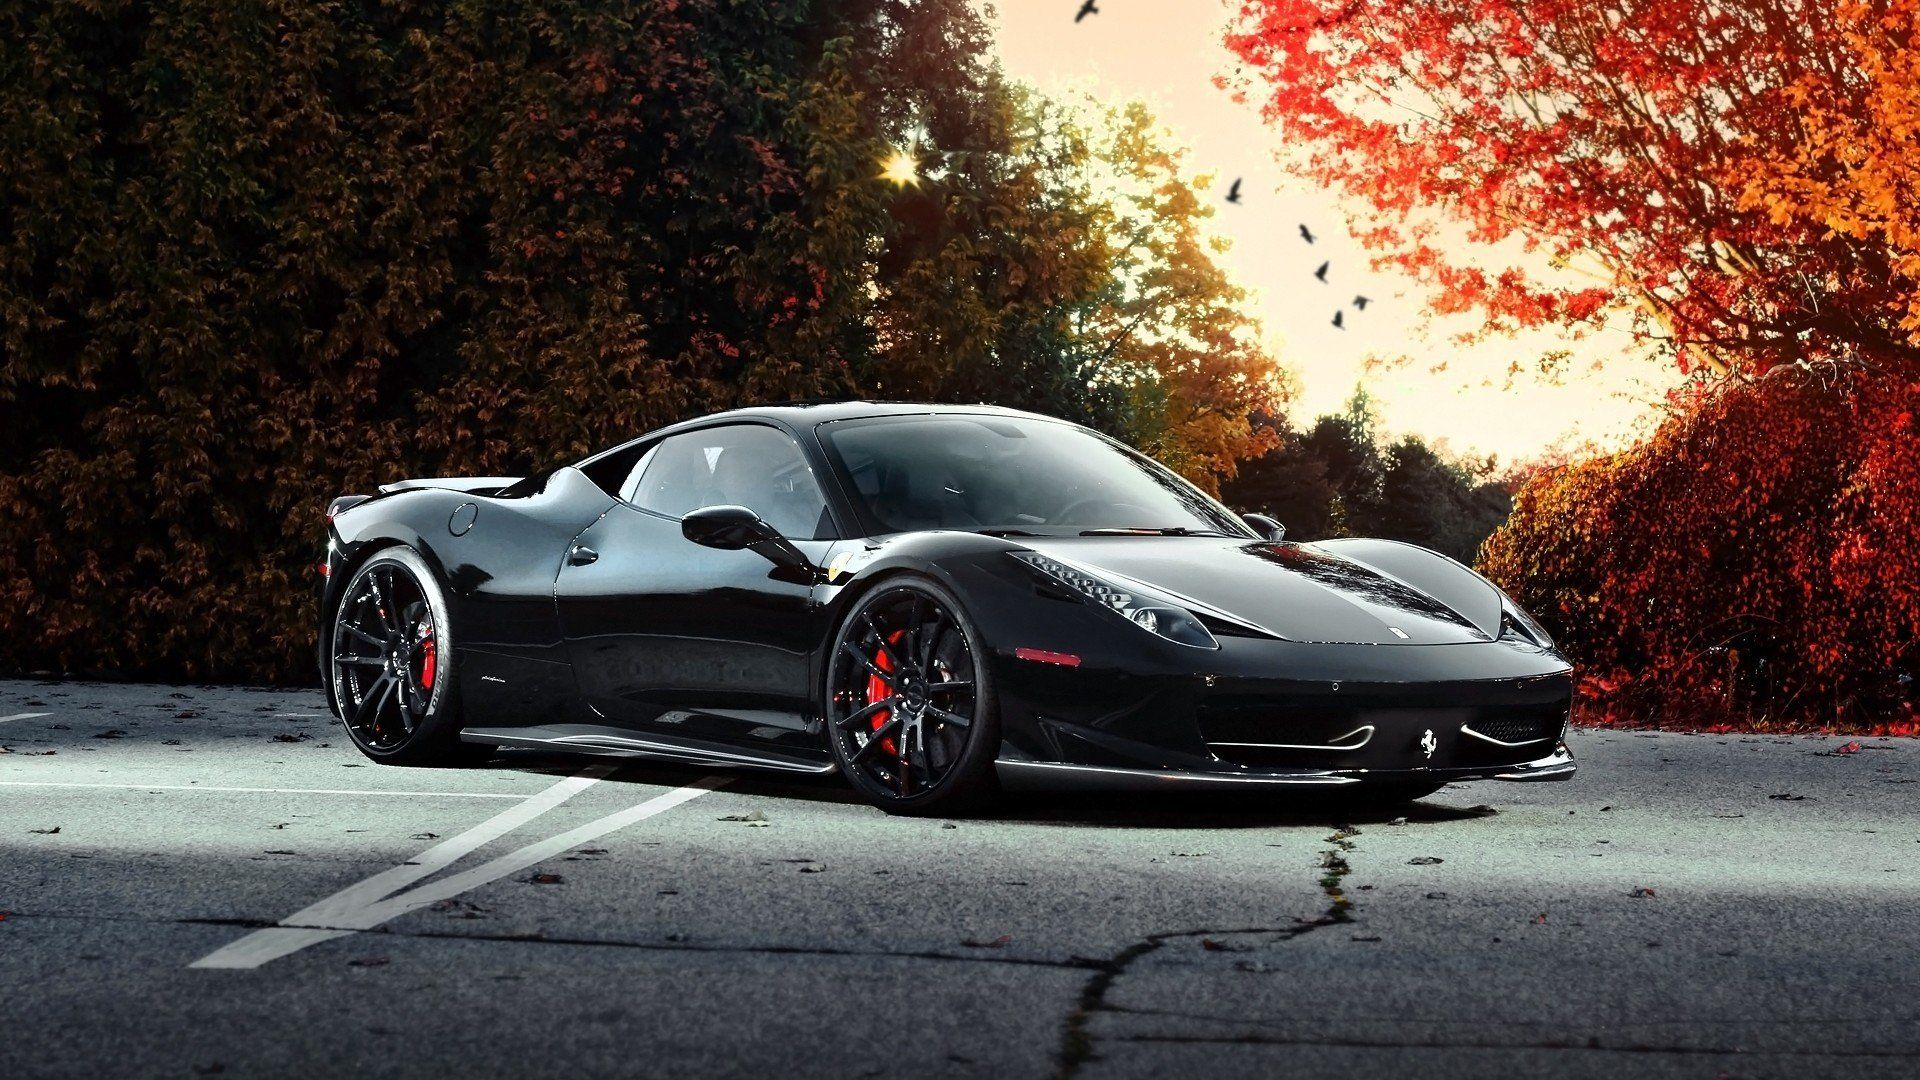 Tuning Cars Wallpapers Android Apps On Google Play